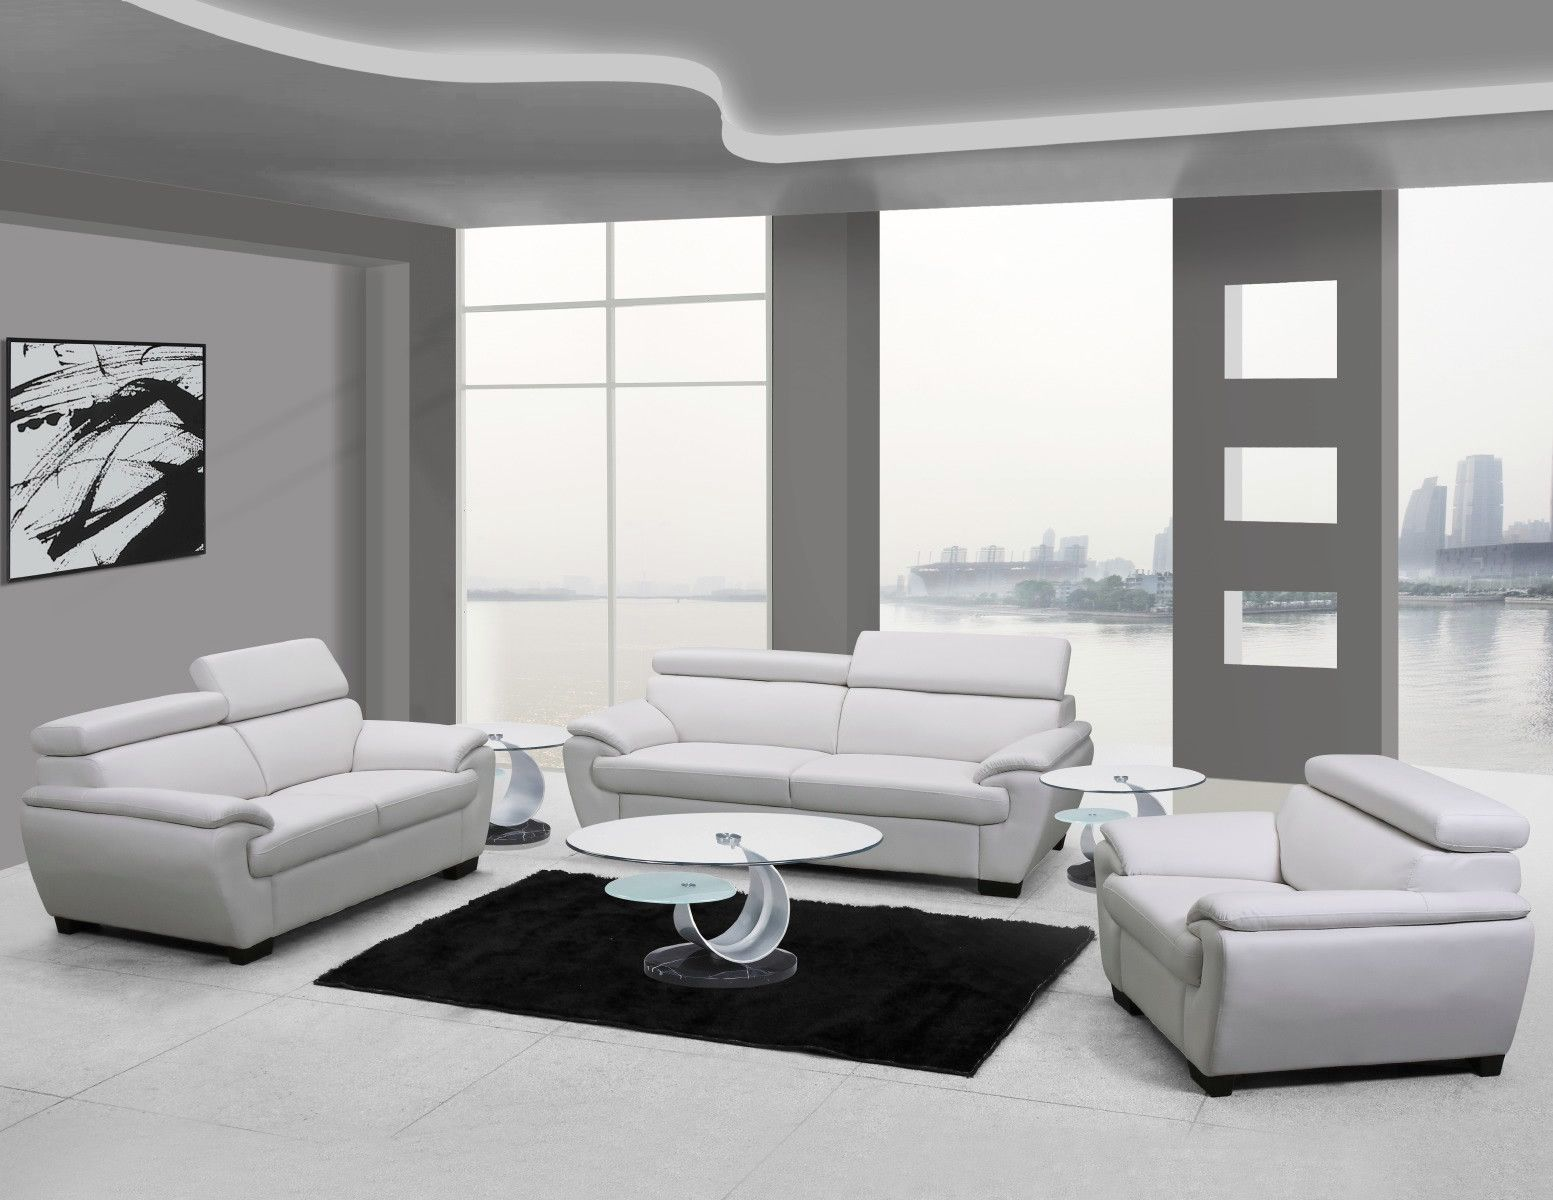 U4571 White Leather Living Room Set | Leather living room set ...